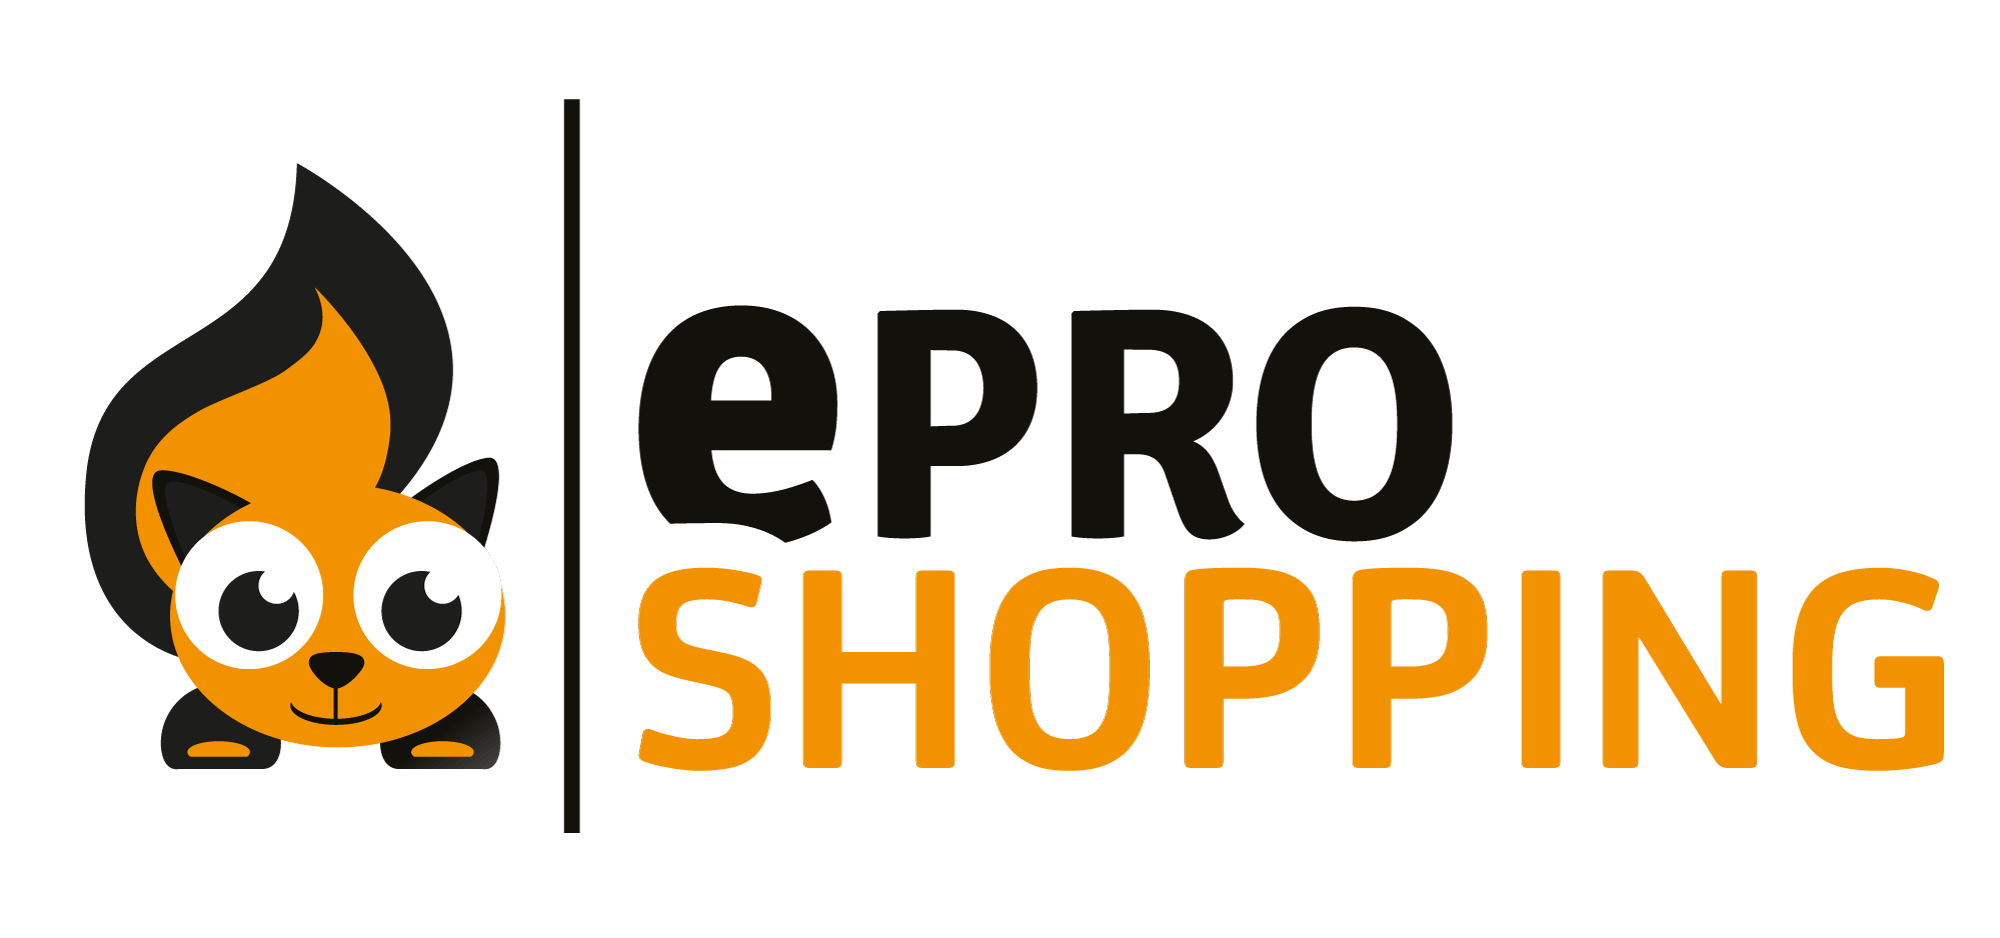 e Pro Shopping : solution Ecommerce en SAAS gratuite !